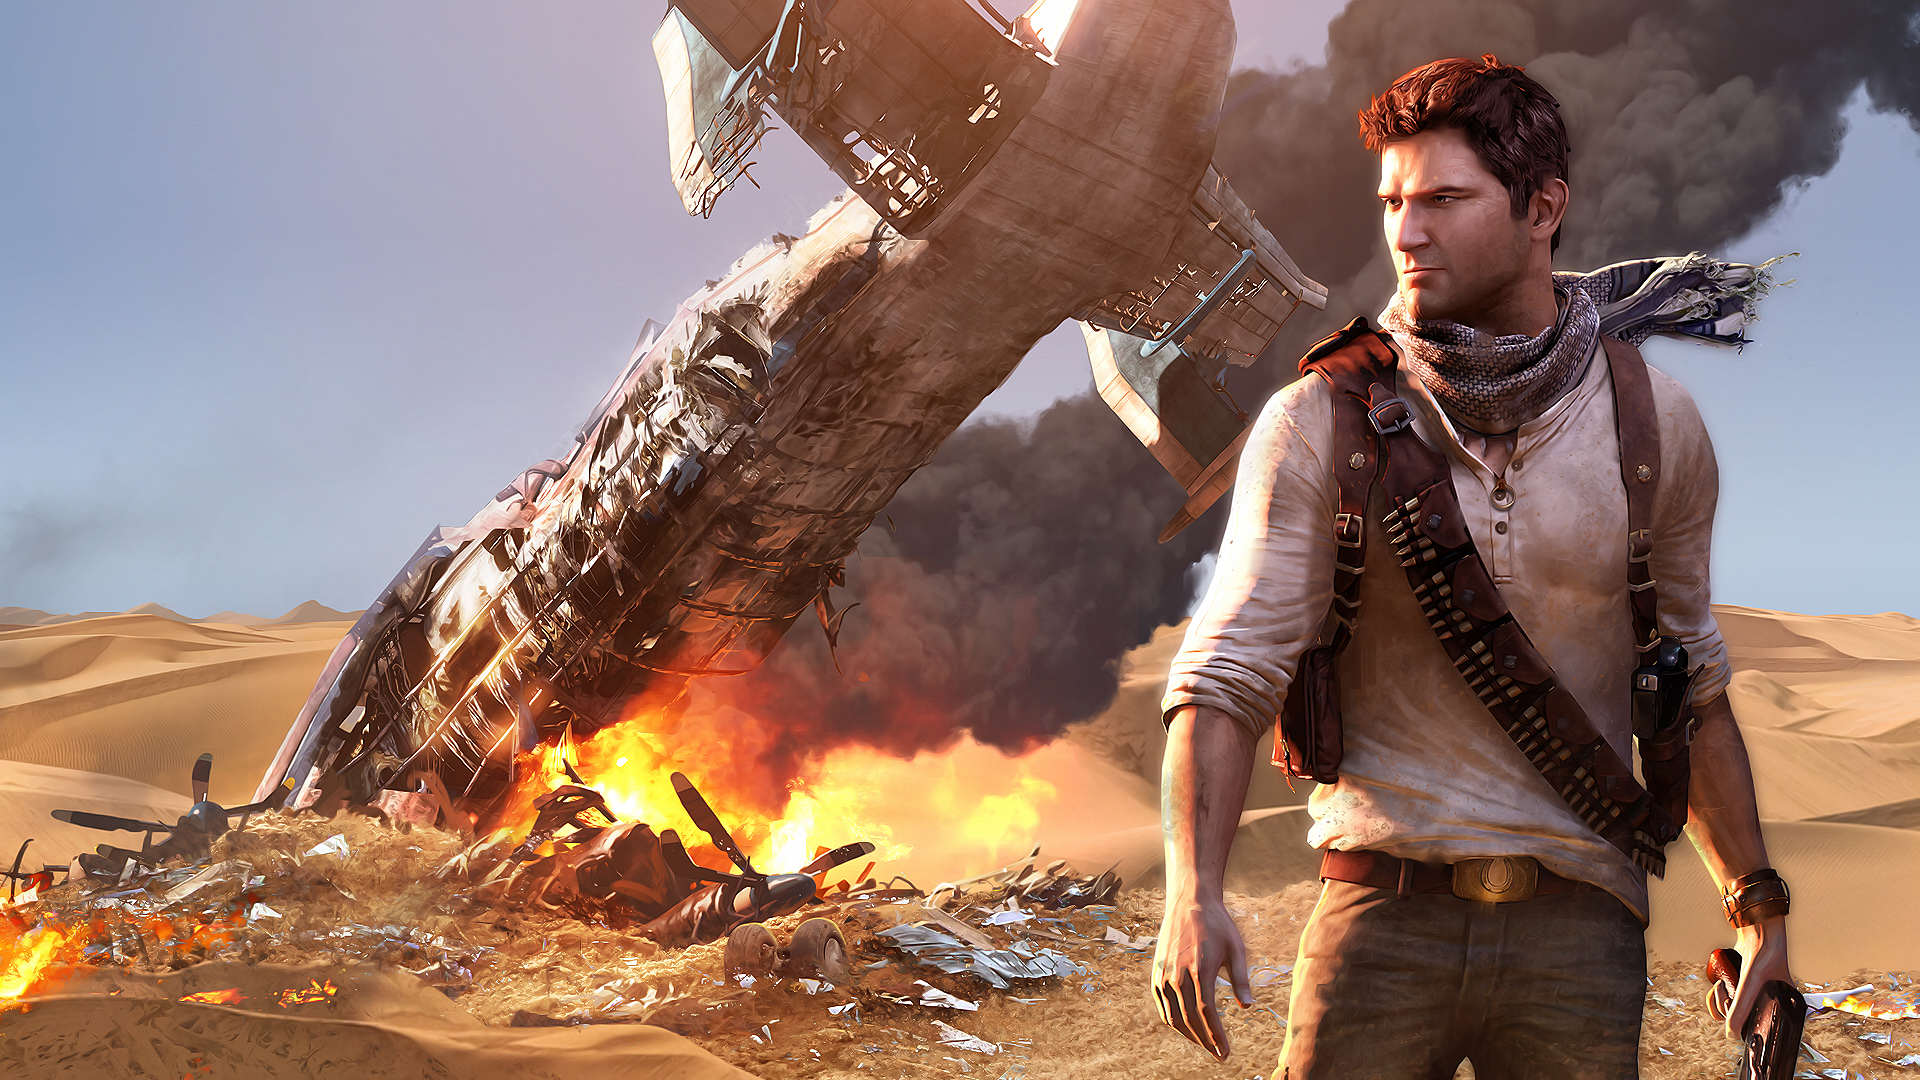 uncharted Who Should Play Drake In The Uncharted Movie?